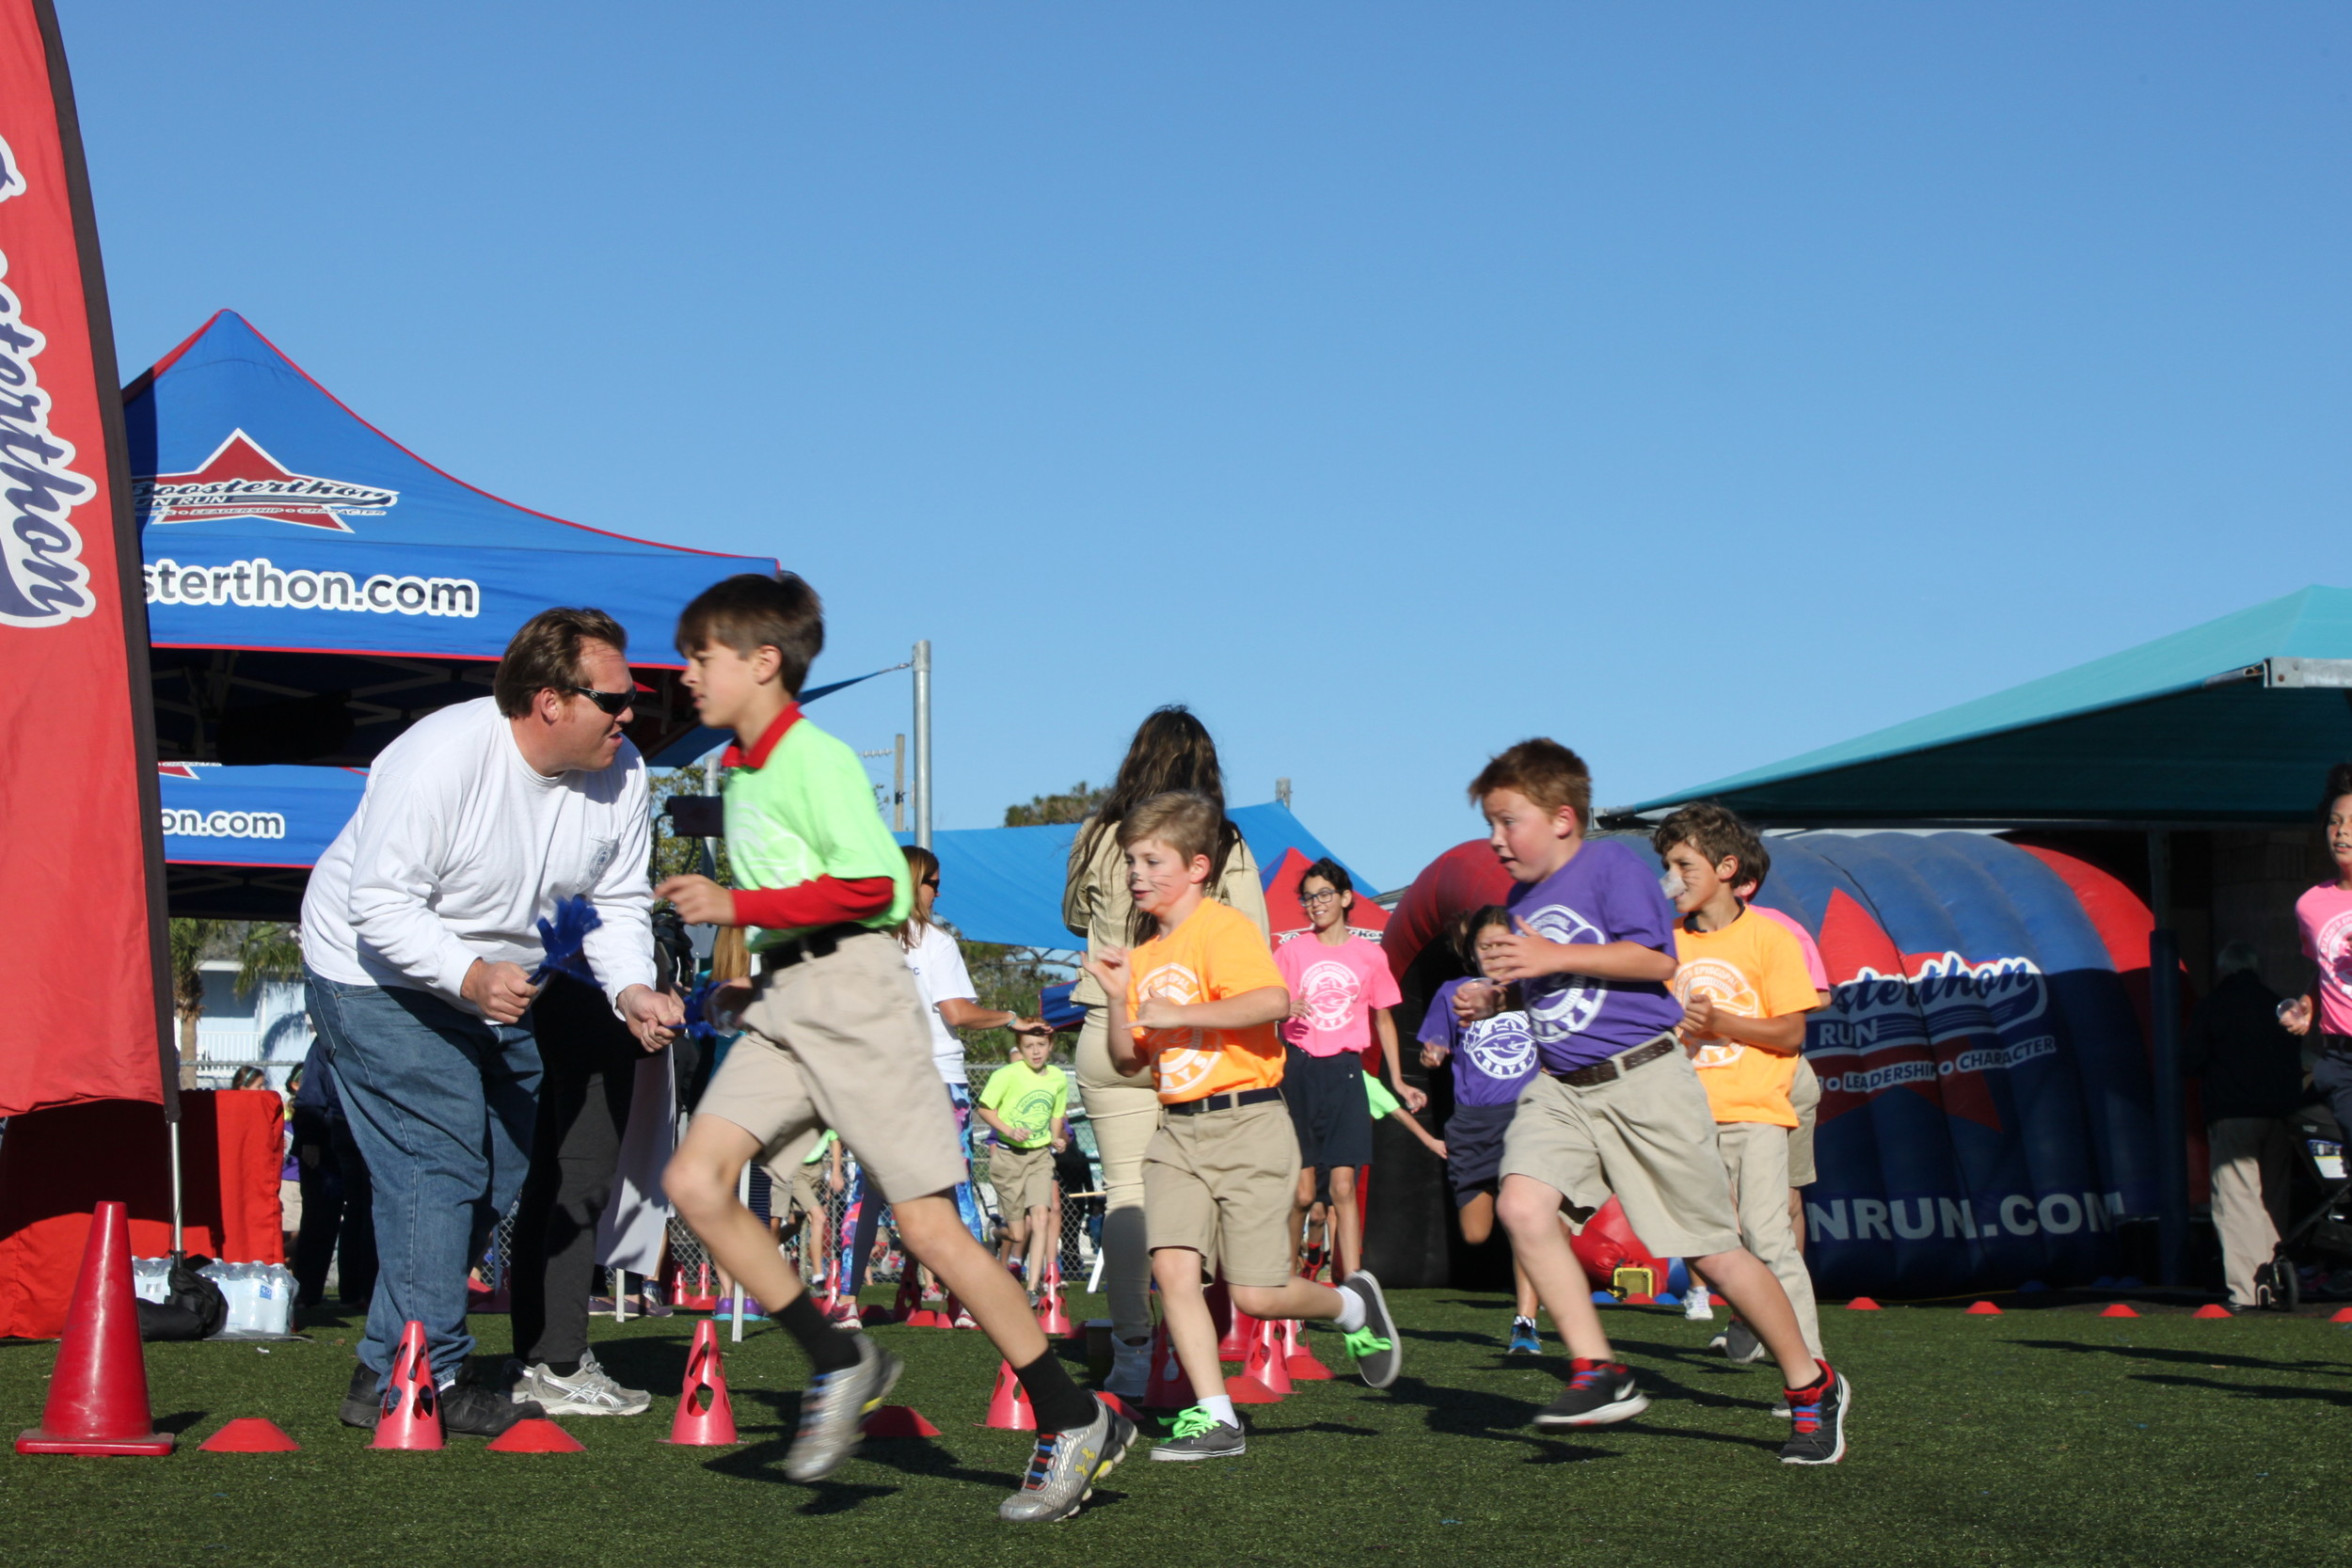 Beaches Episcopal School students run in the Boosterthon Fun Run event.